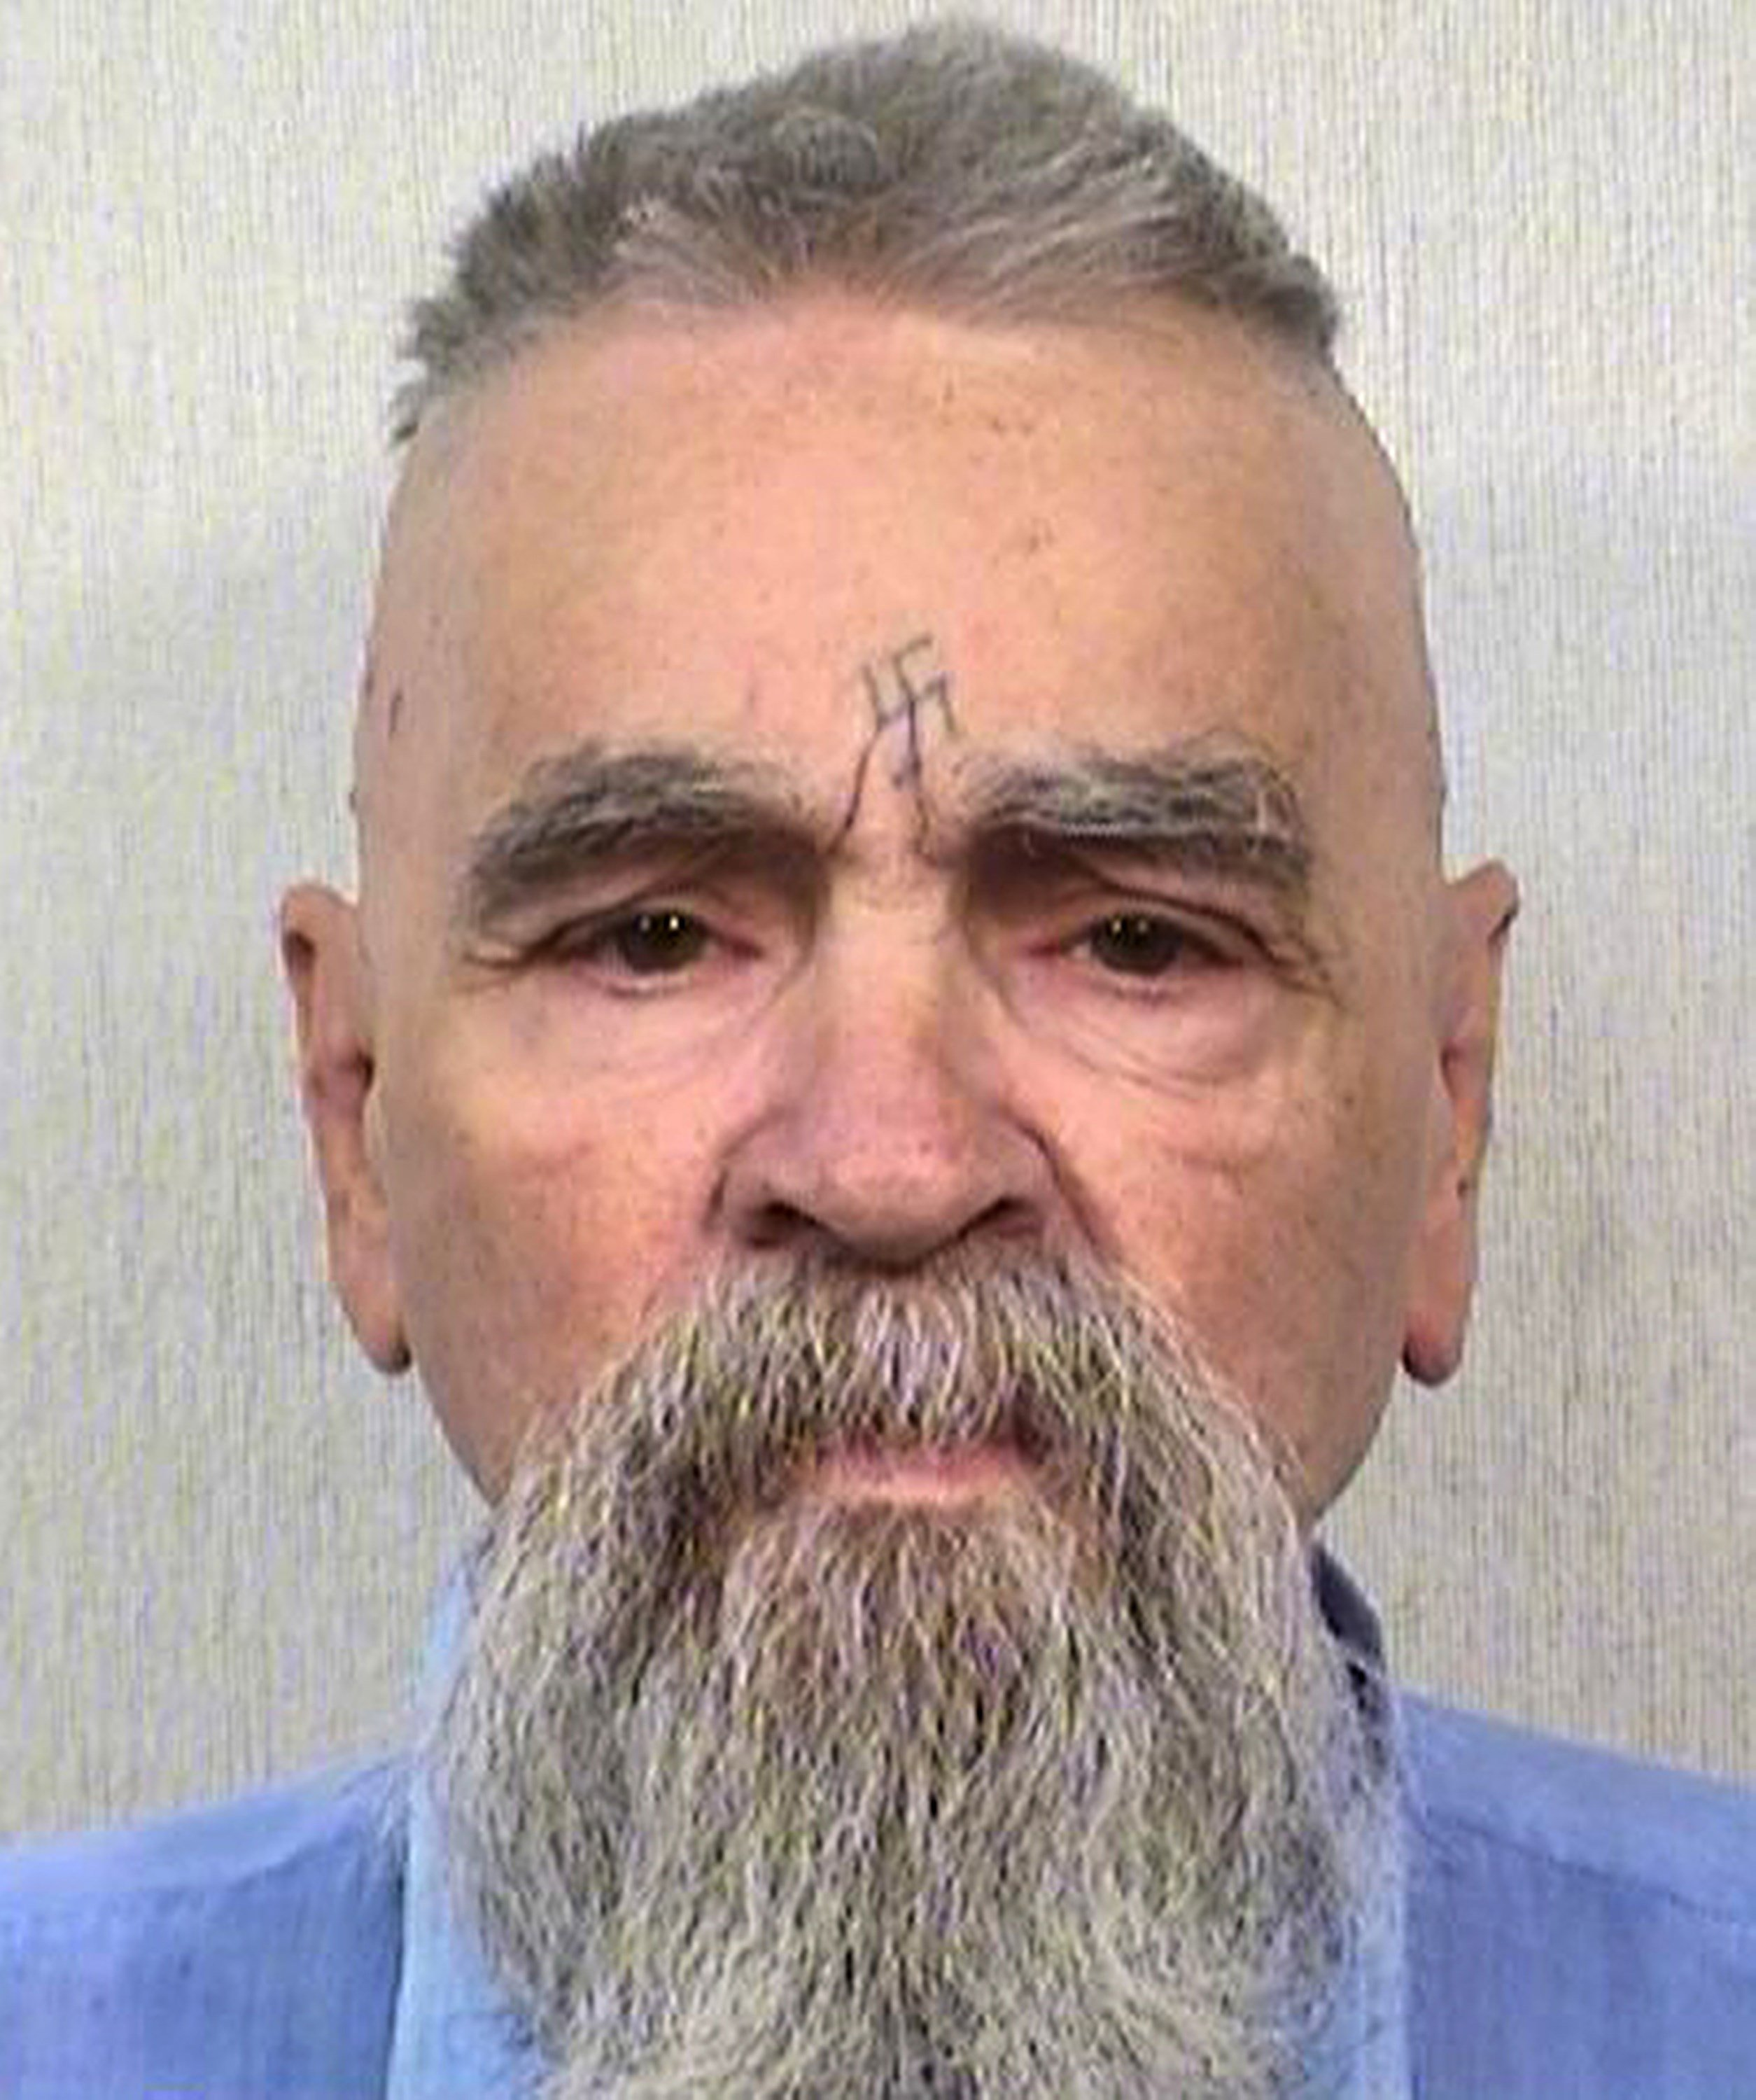 This Oct. 8, 2014 file photo provided by the California Department of Corrections and Rehabilitation shows serial killer Charles Manson. Manson has been hospitalized.  (California Department of Corrections and Rehabilitation via AP, File)